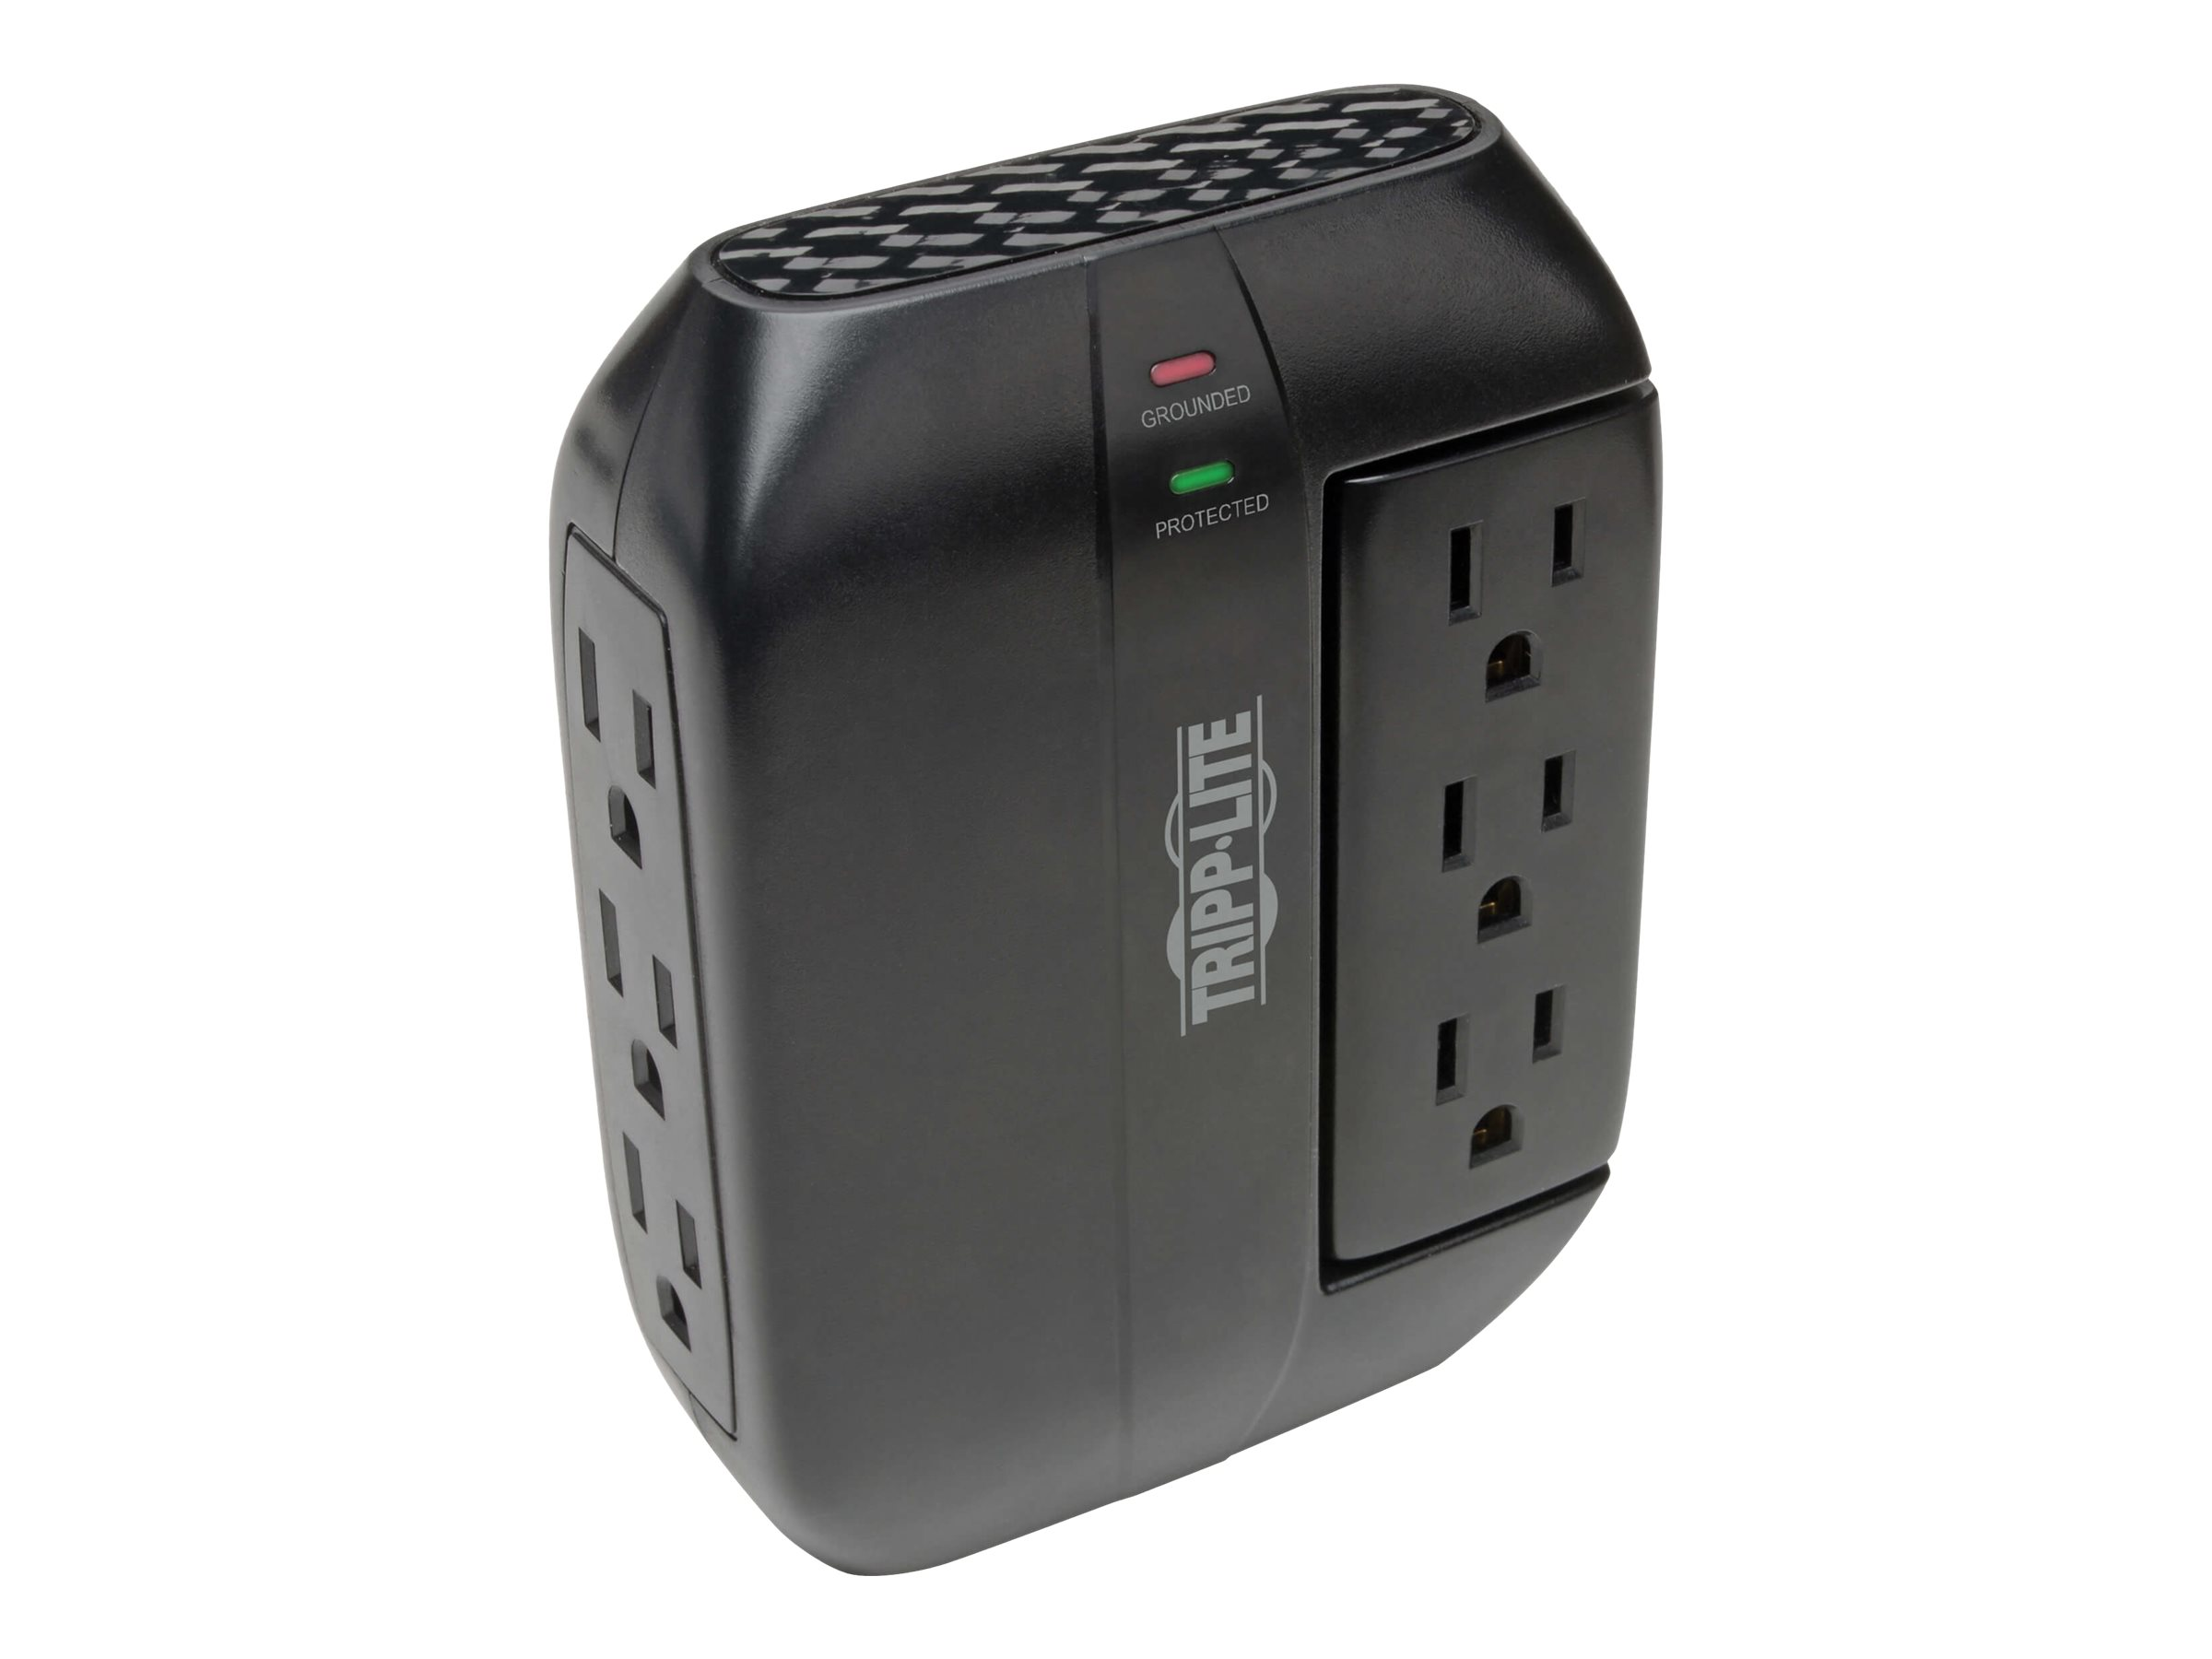 Tripp Lite Surge Protector Swivel 6 Outlet Wallmount Direct Plug In 120V 1200 Joules Black - surge protector